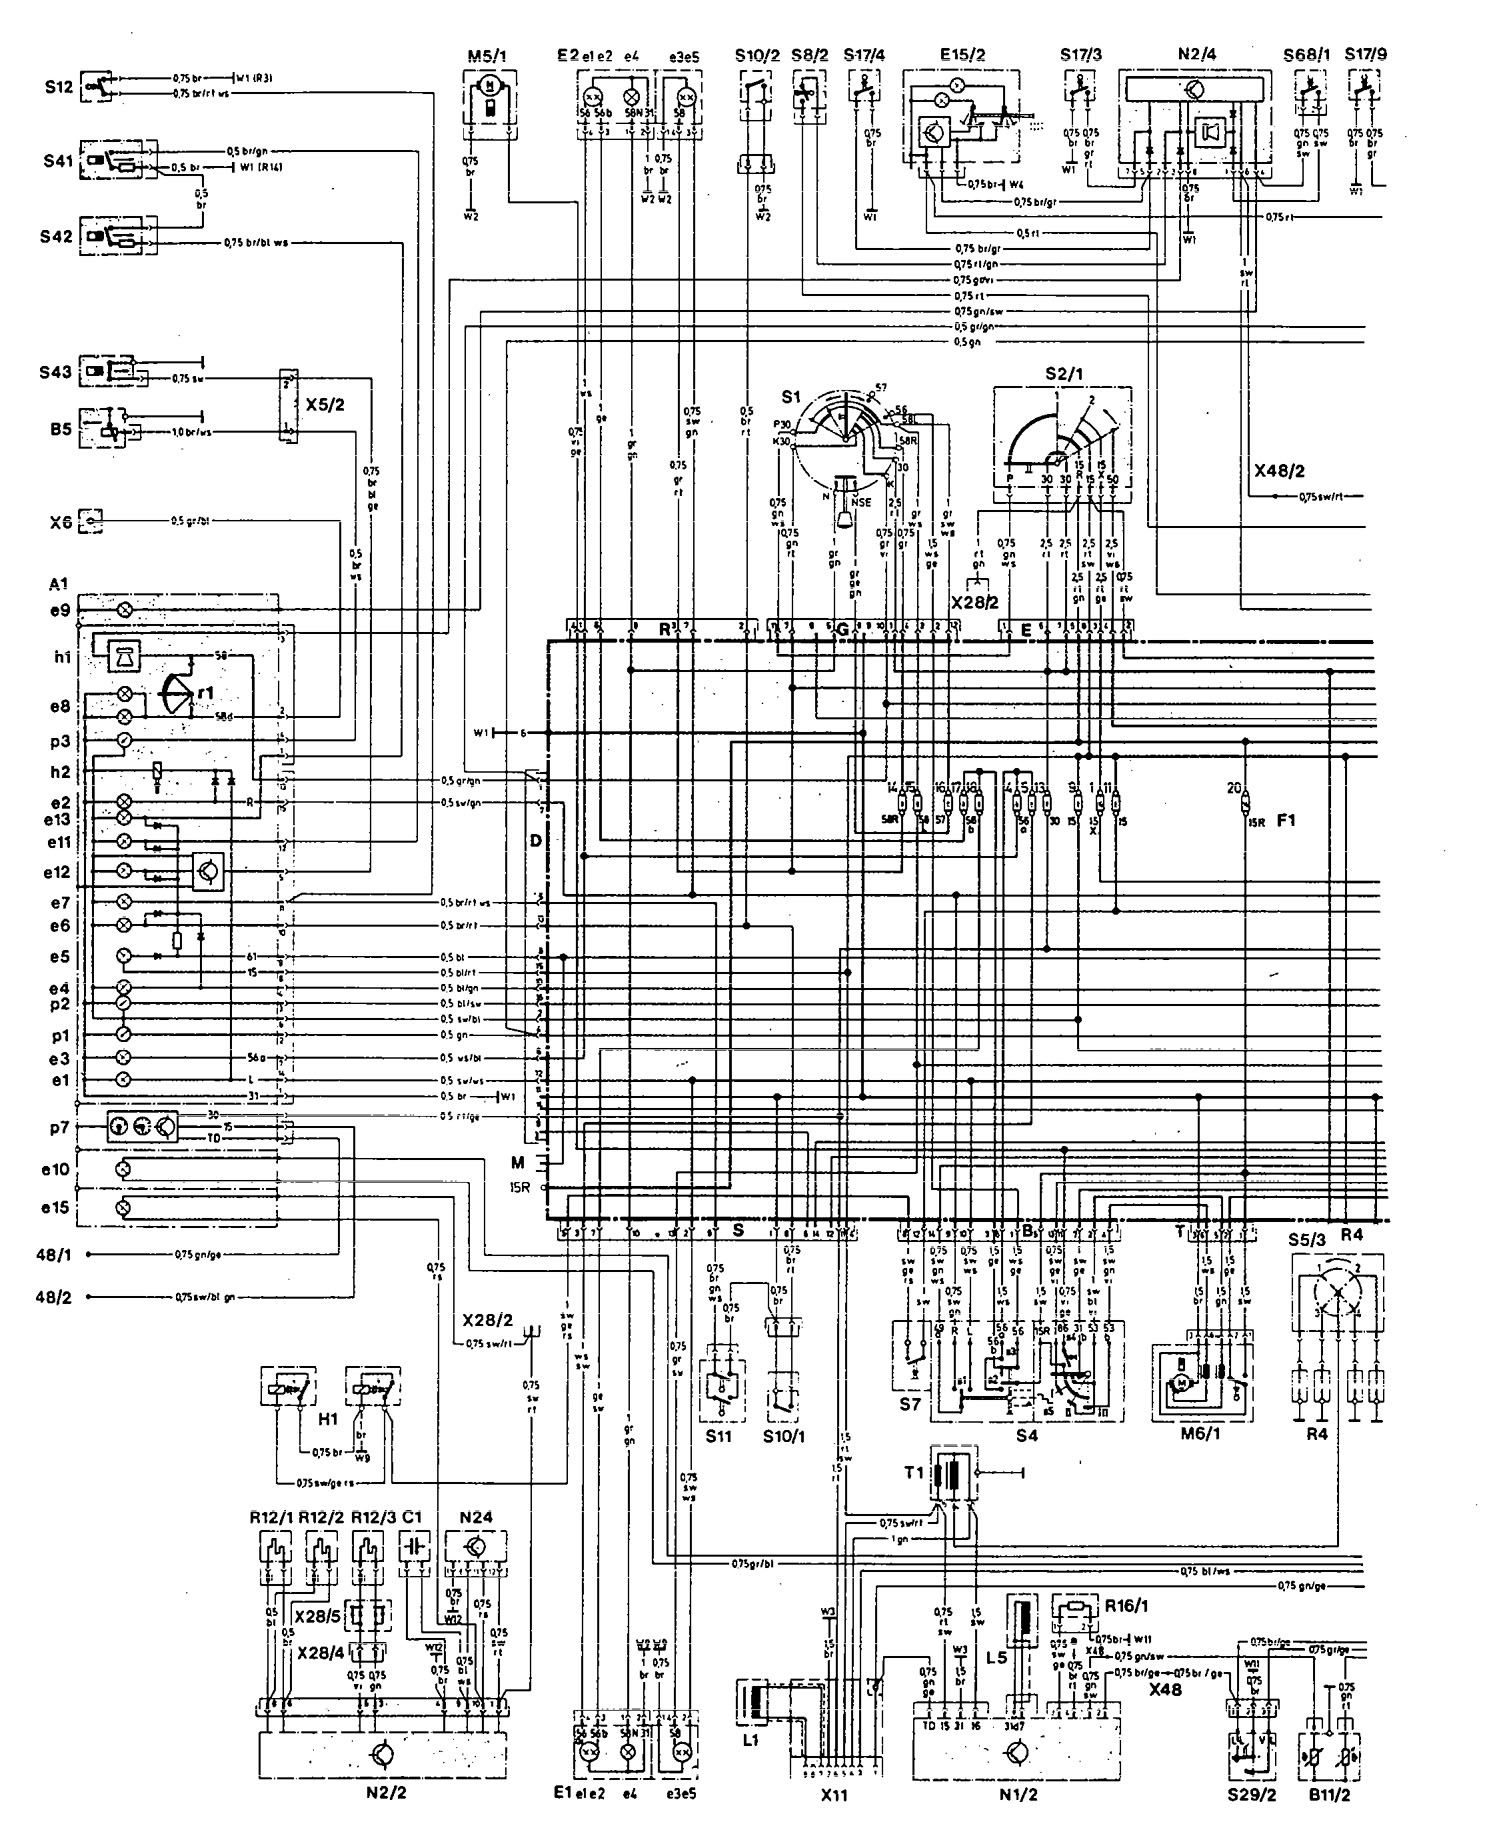 2008 Mercedes C300 Fuse Diagram Engine C350 190e 1992 Wiring Diagrams Charging System And